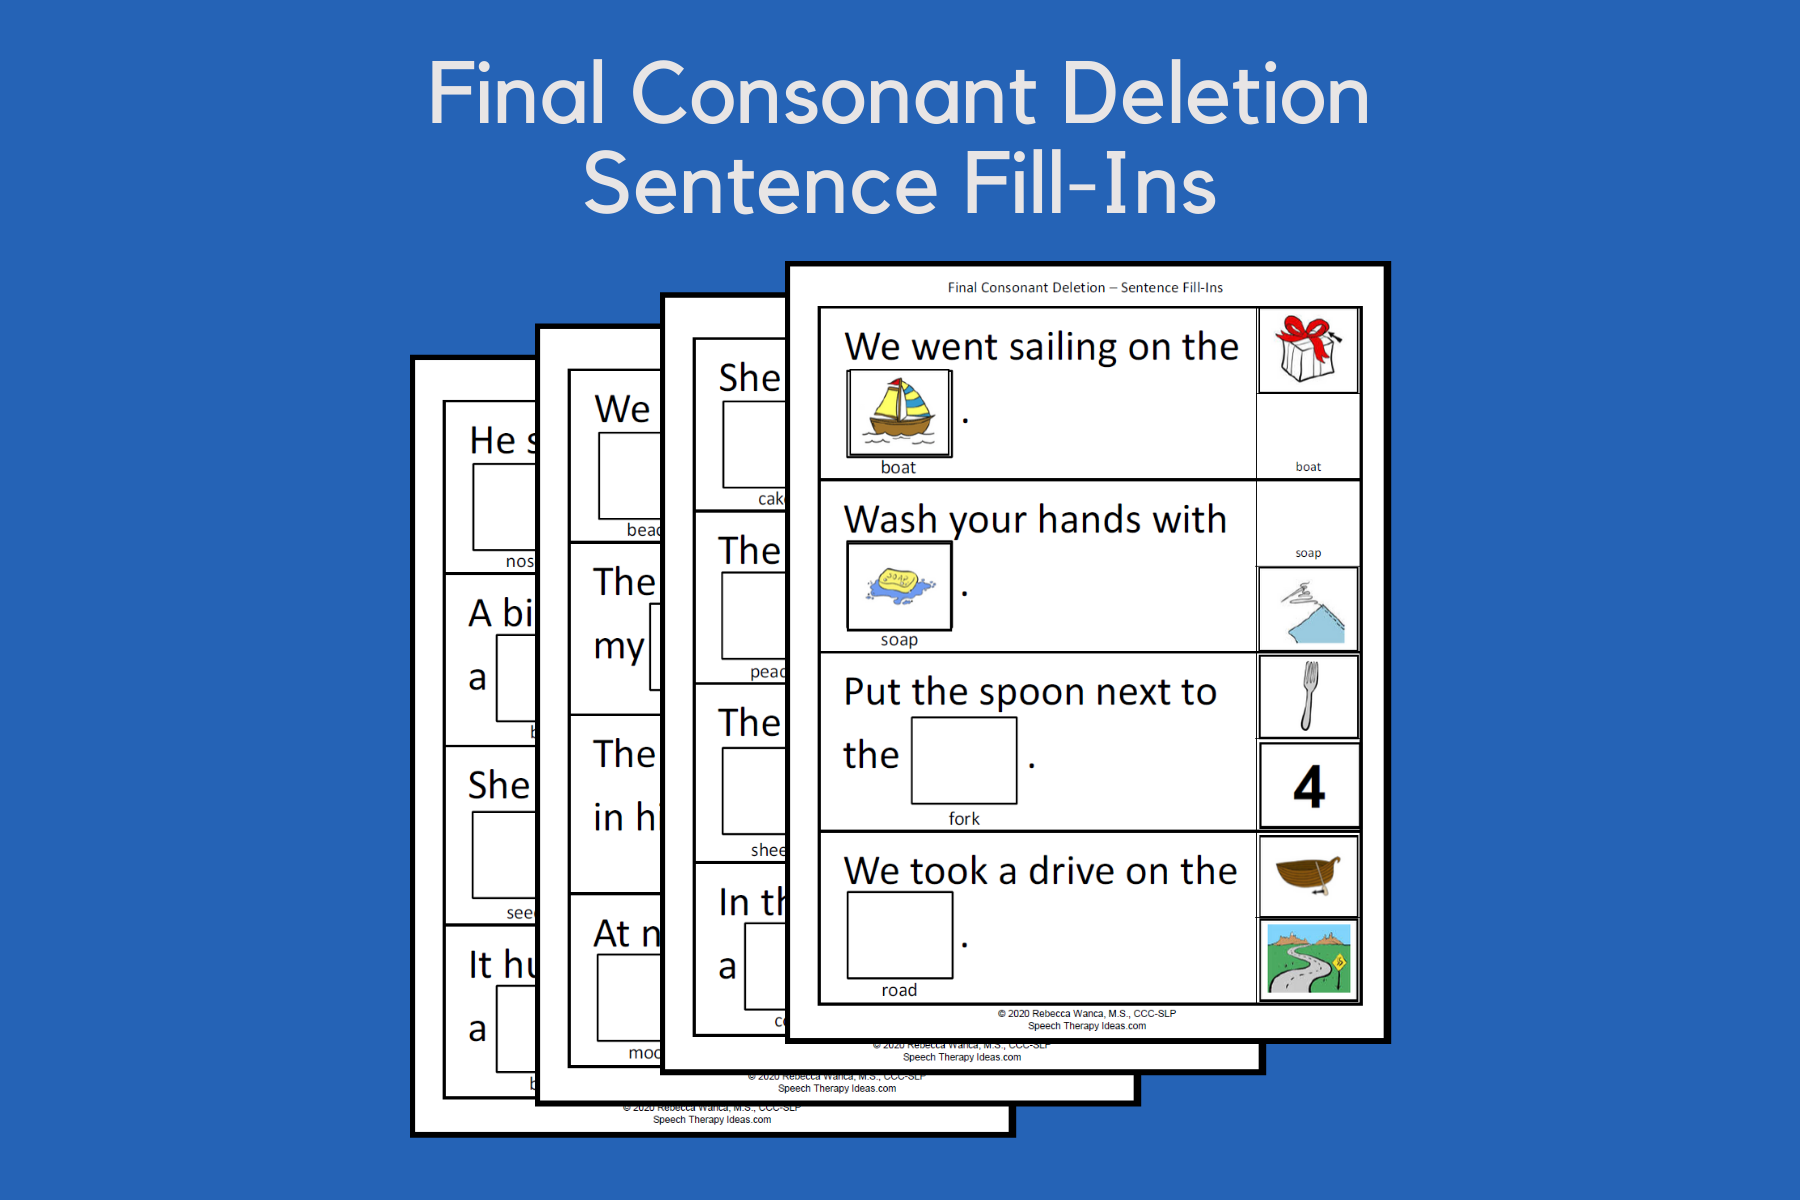 Final Consonant Deletion Sentence Fill-Ins